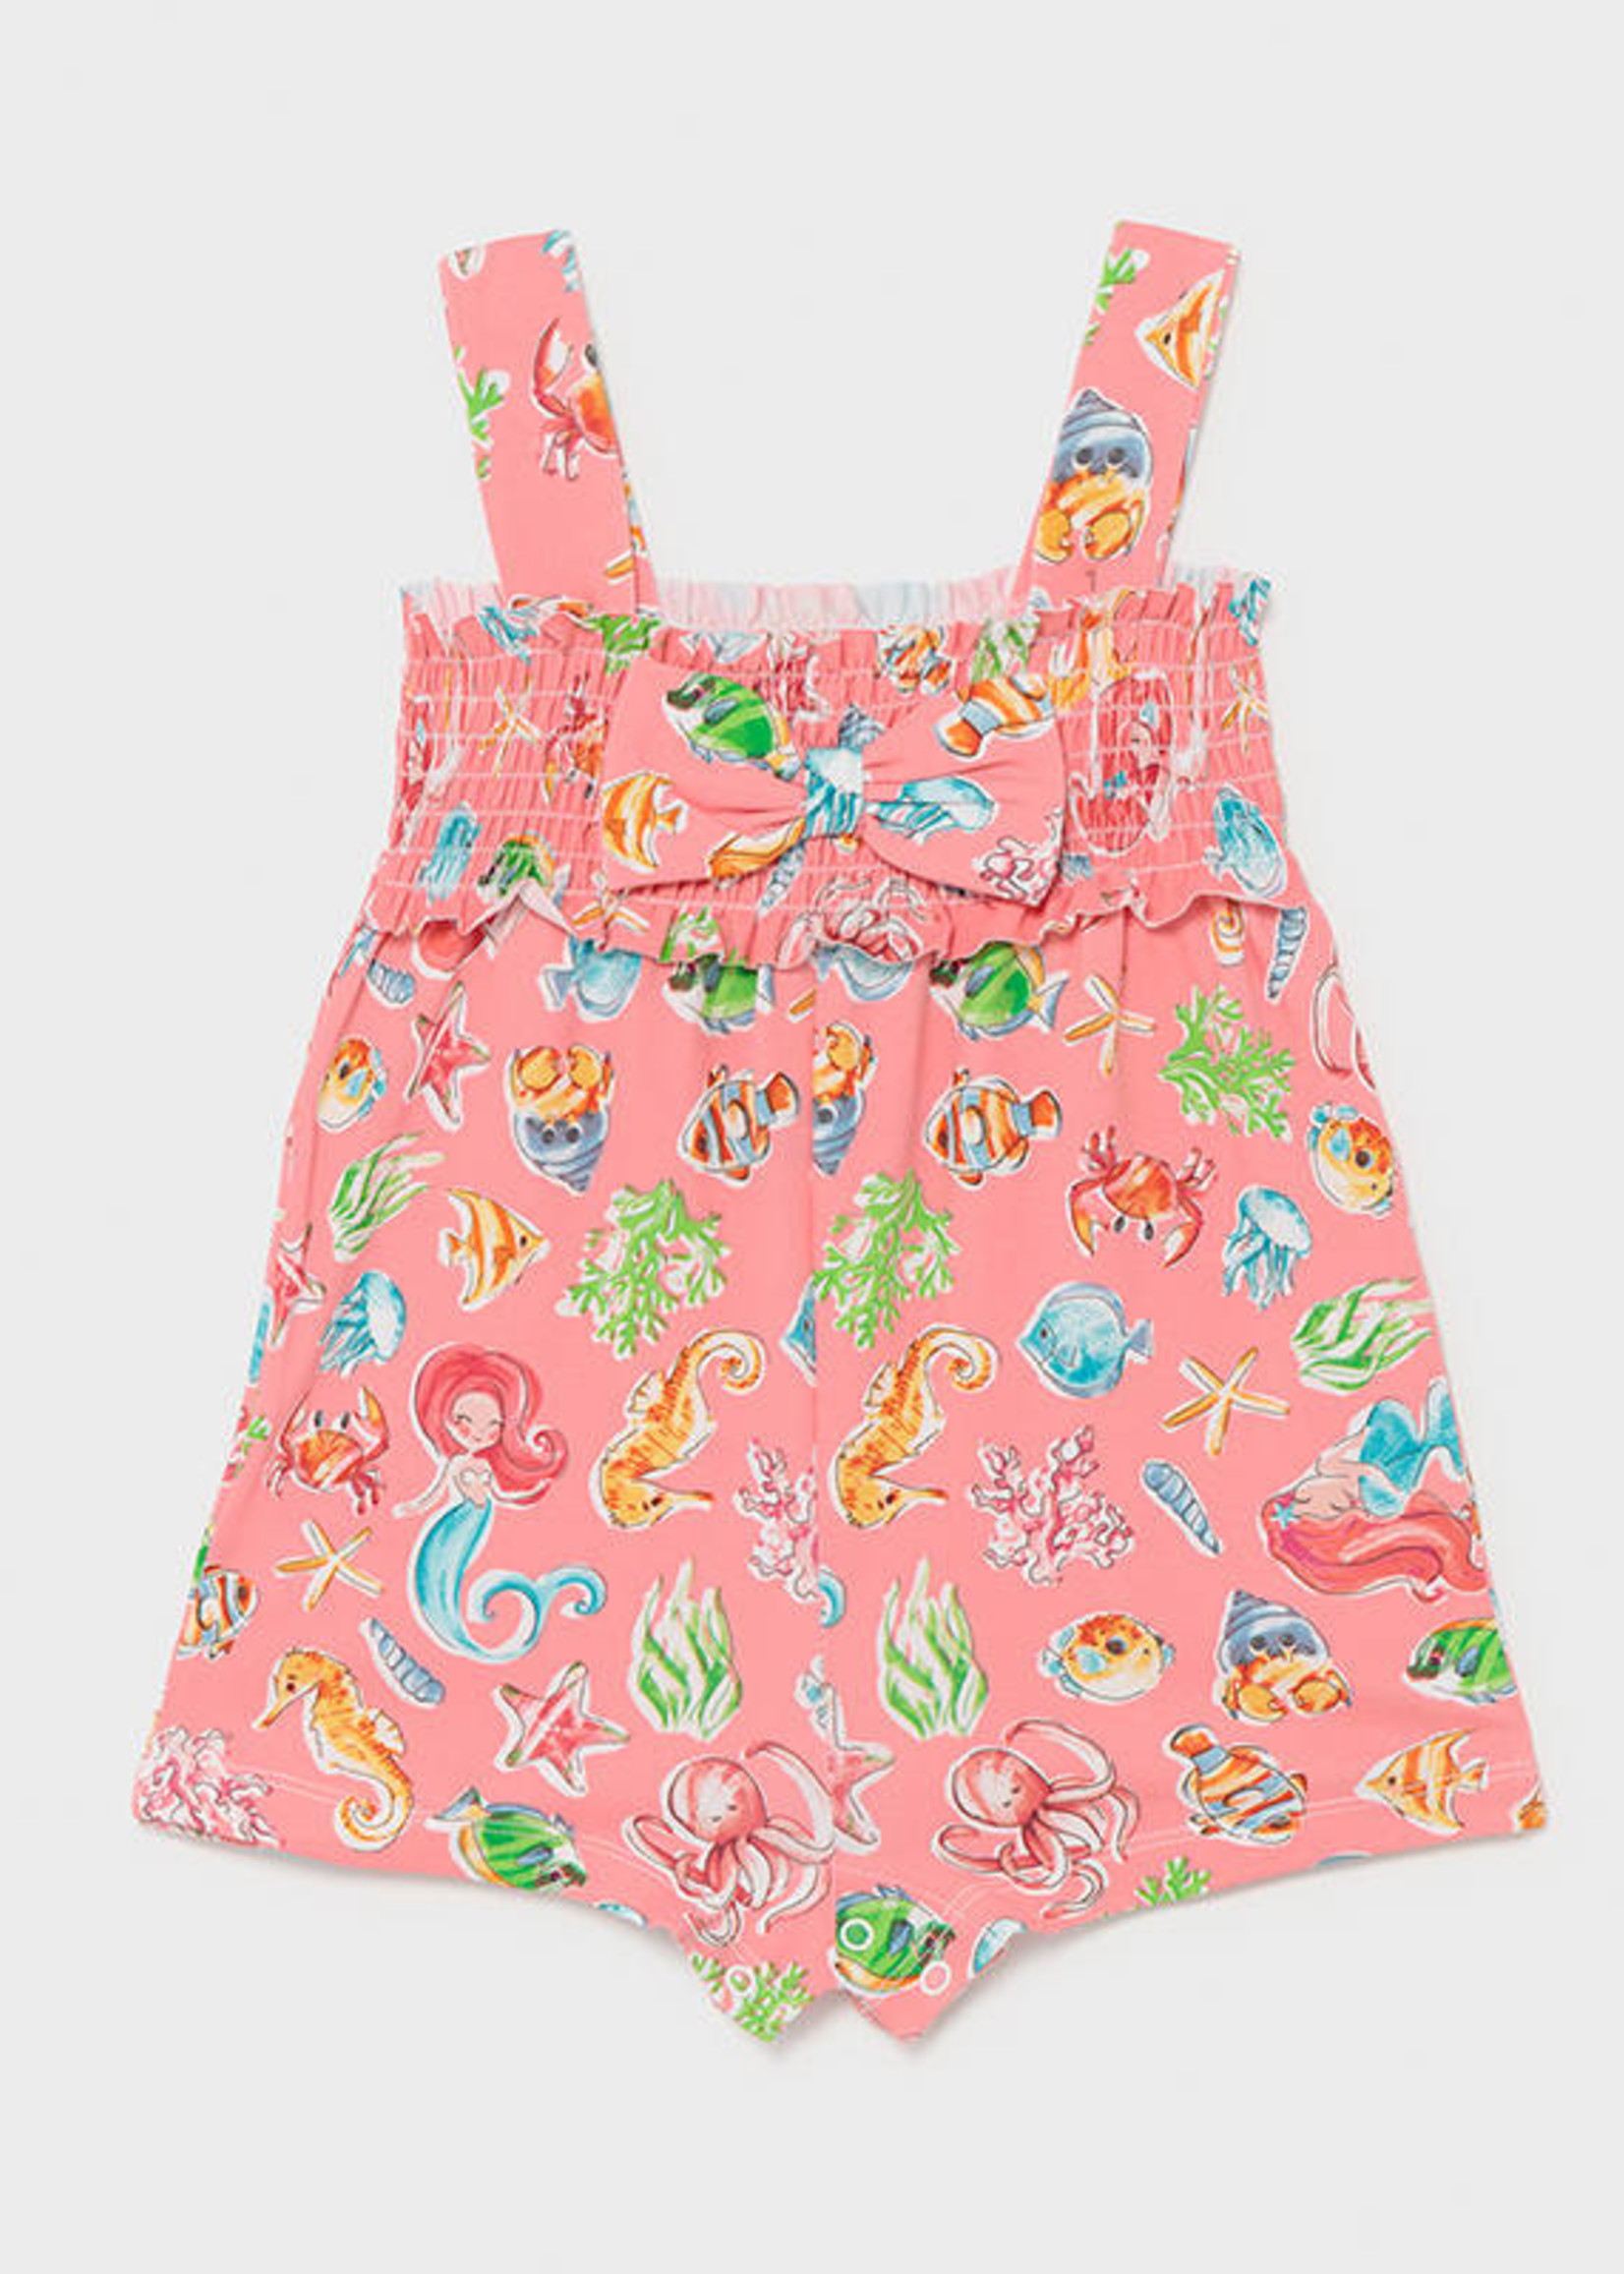 Mayoral Mayoral knit printed jumpsuit for baby girl